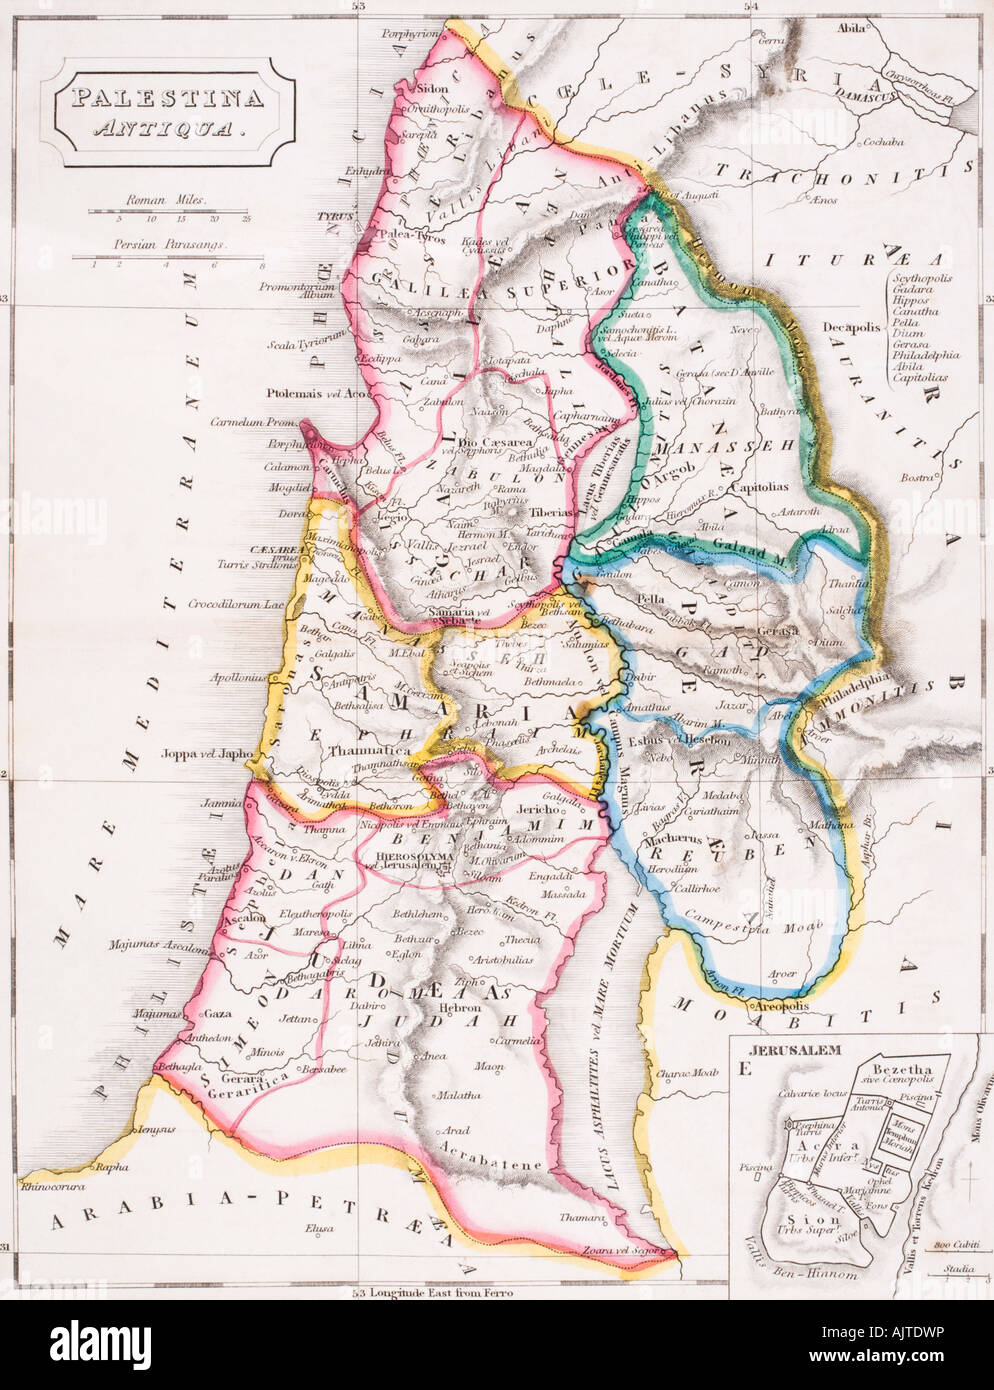 Map of Palestine Palestina Antiqua - Stock Image